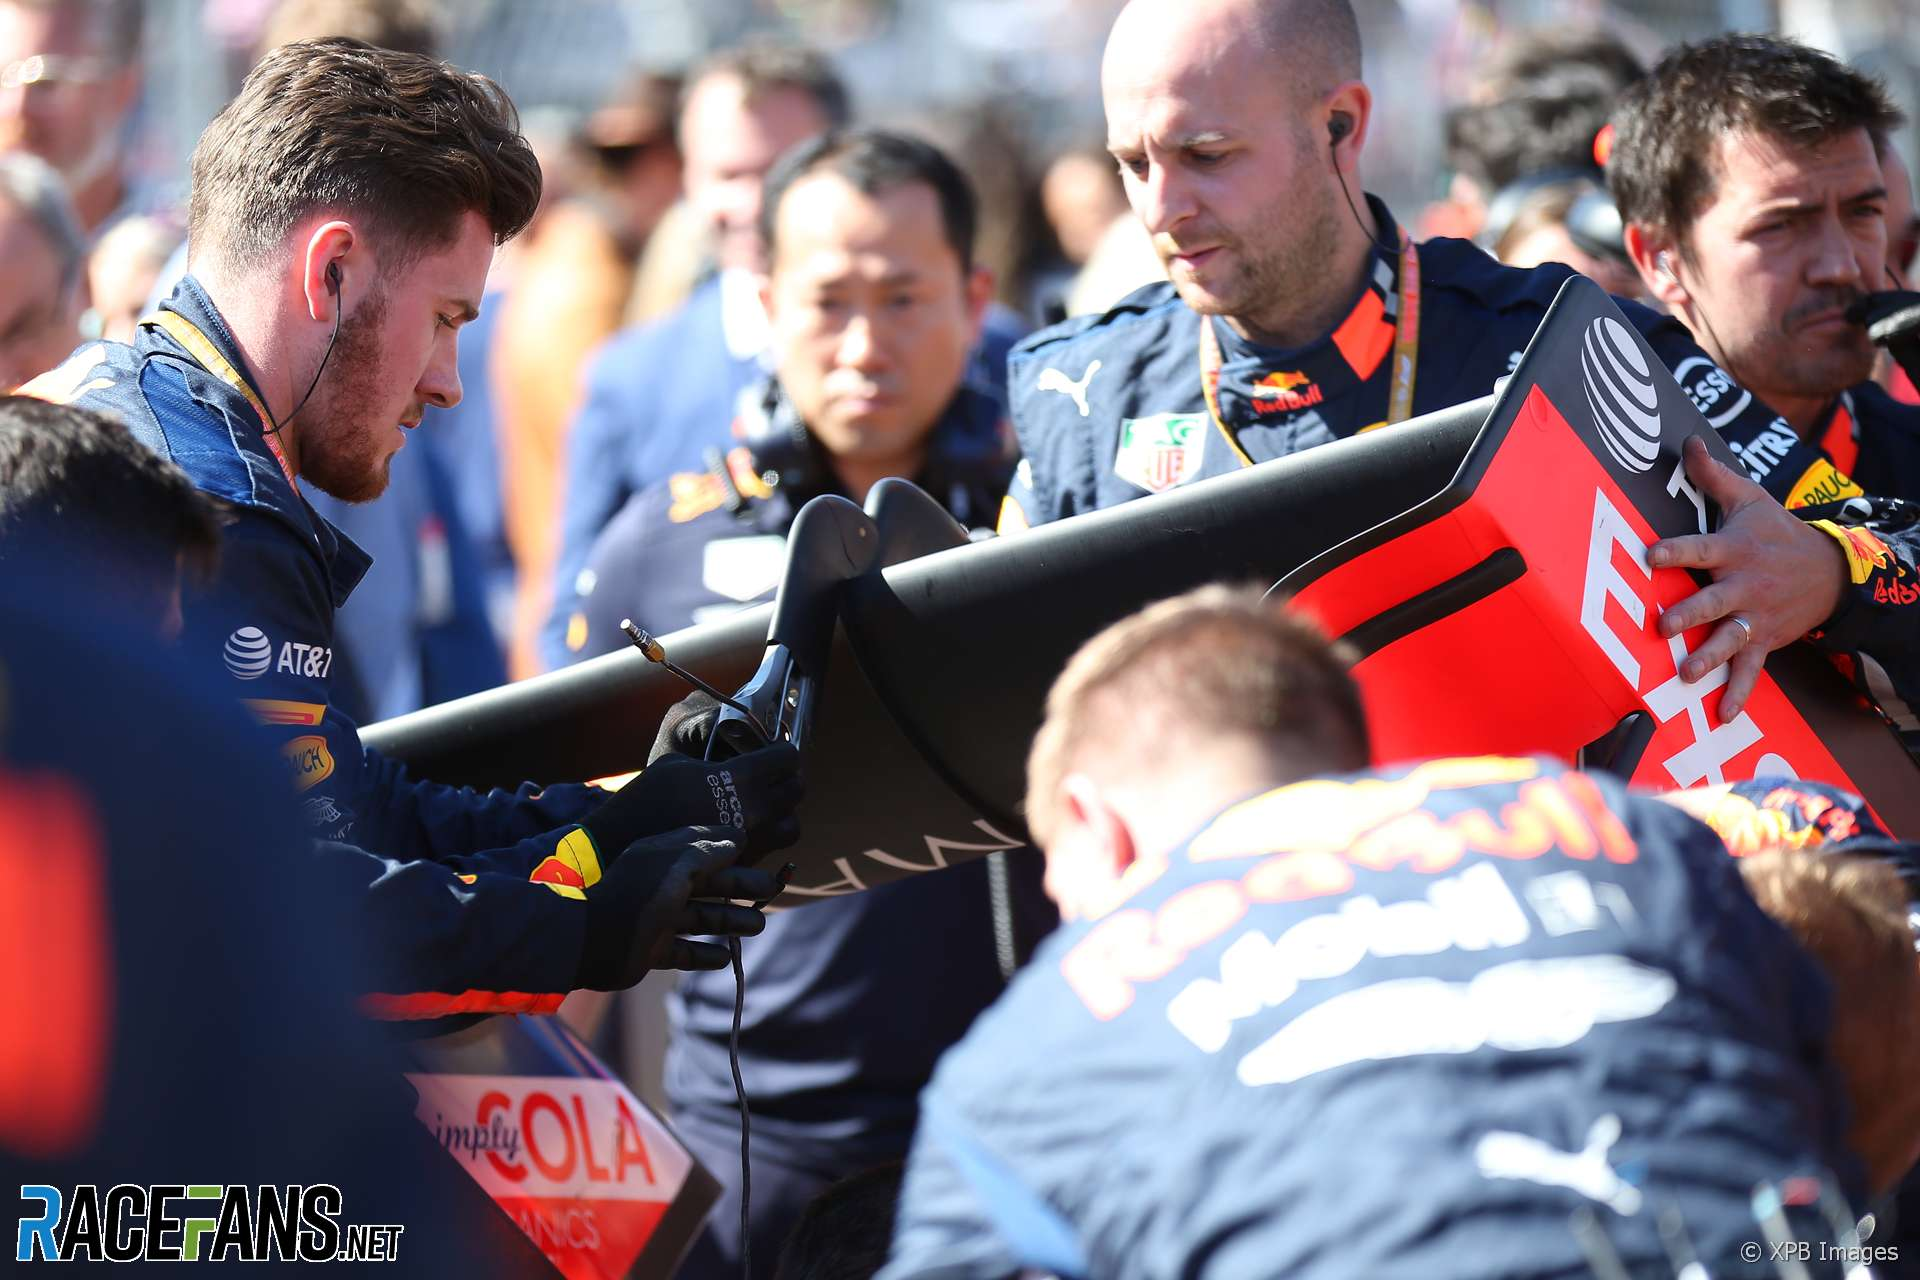 Red Bull mechanics fix Max Verstappen's rear wing, Circuit of the Americas, 2019